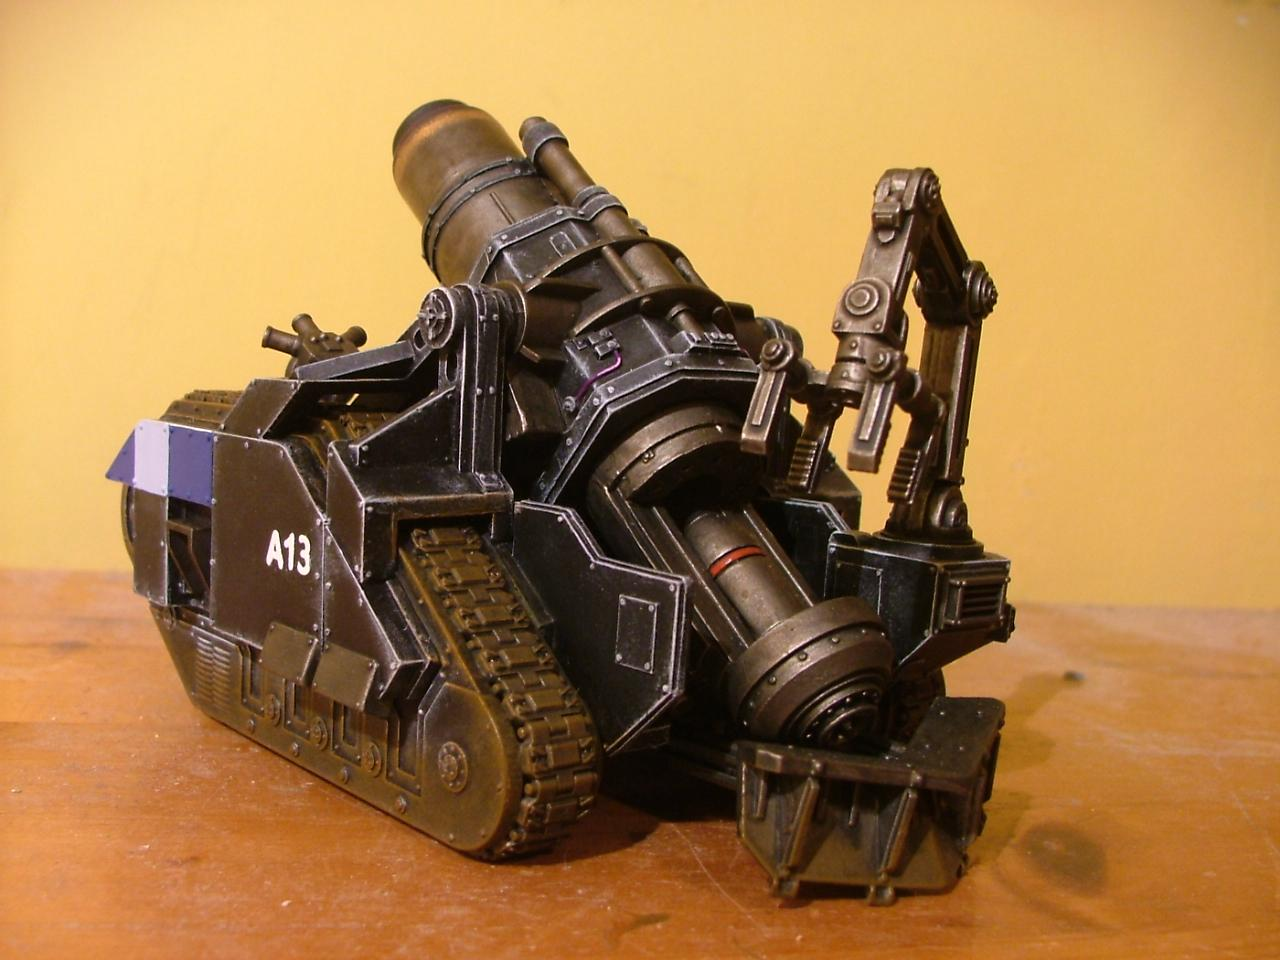 Bombard, Imperial Guard, Warhammer 40,000